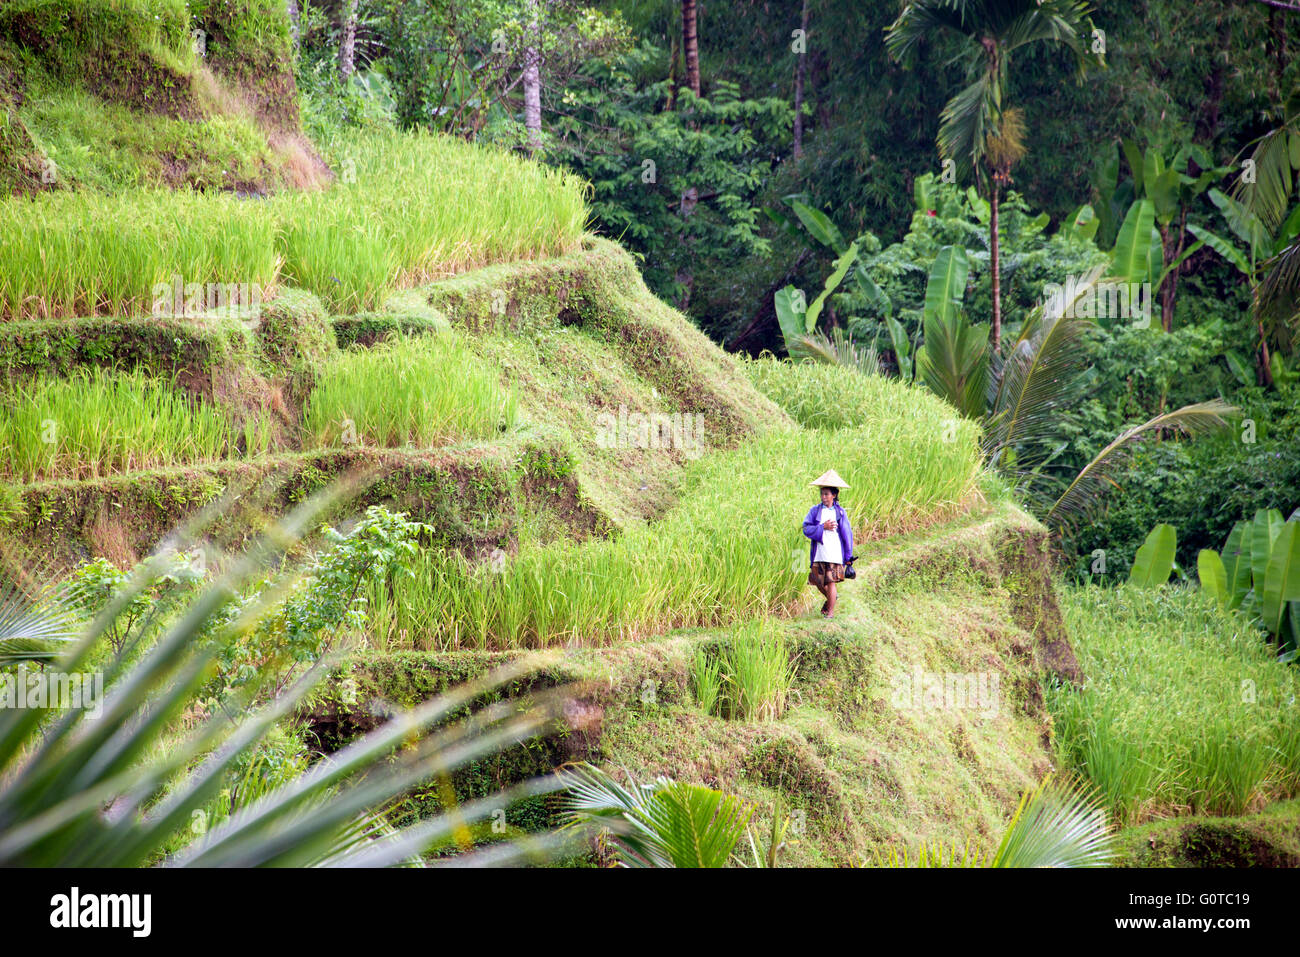 Balinese woman wearing conical hat Tegallalang rice terraces Ubud Bali Indonesia - Stock Image